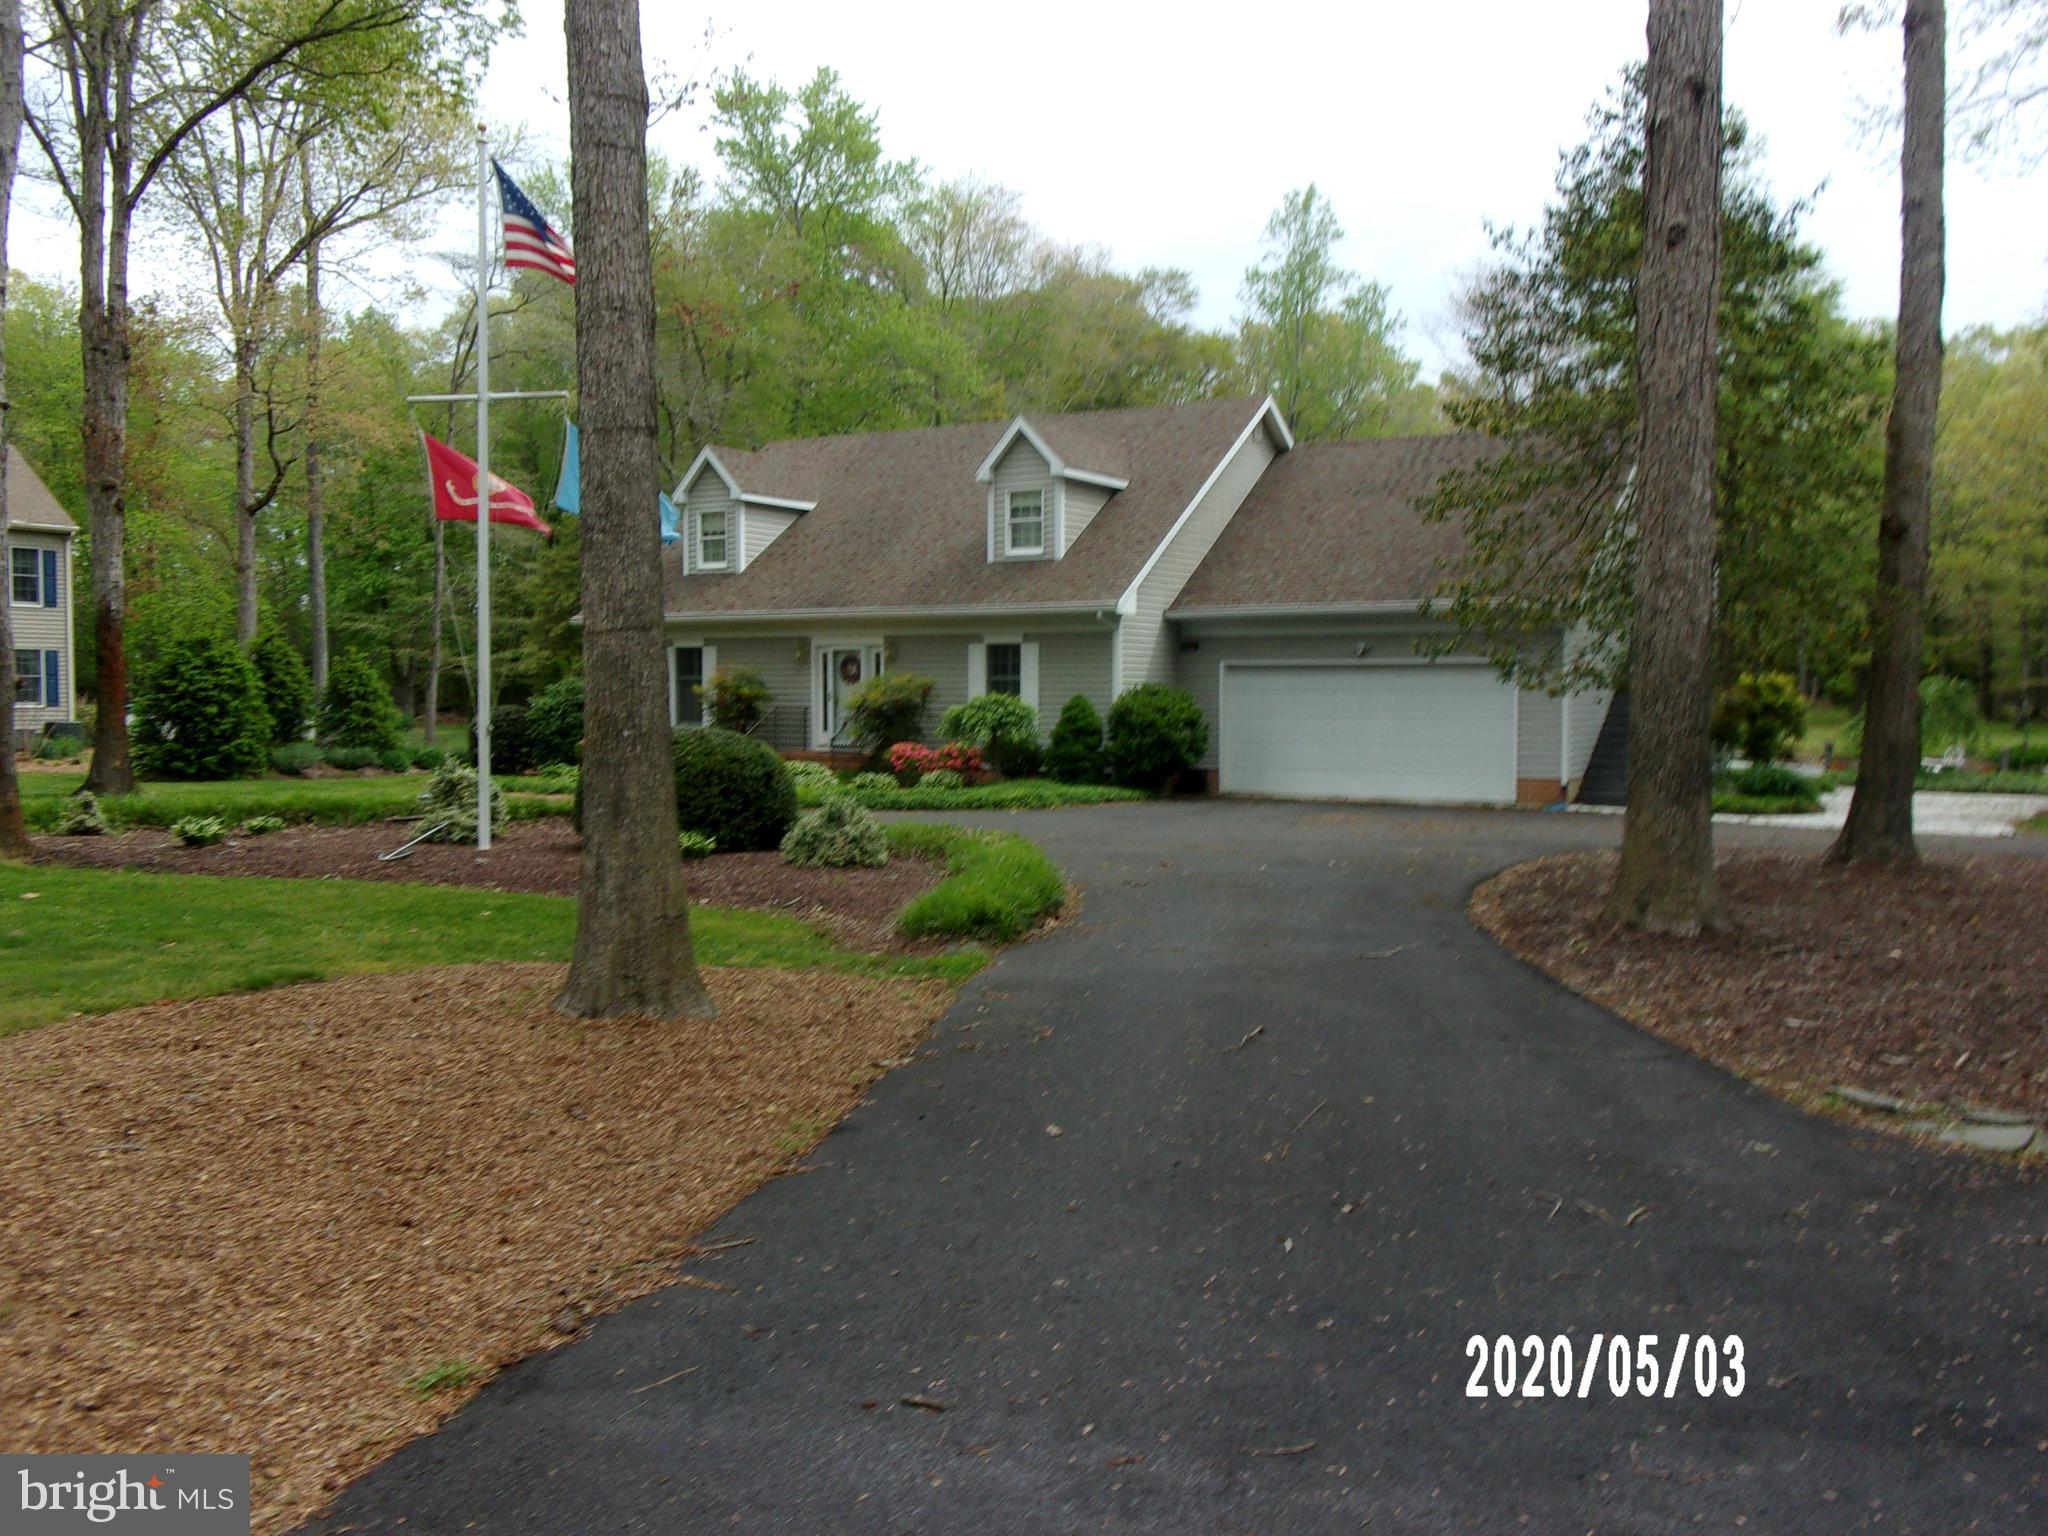 Attractive, clean Cape Cod style home.  Built in 1992 is located on 2 acres of a wooded lot.  The house has been well maintained and has one owner.  As you enter the property on an asphalt horseshoe driveway, your view is that of a peaceful, private setting.  The driveway has an extension on the right side of the property.  There are no HOA fees and minimum restrictions.  The area under the house was encapsulated in  2016.   The back yard view includes a nice size pond with rock garden and fountain.  There is a small dock and walkway around a portion of the pond.  The back yard also has a spacious dog run and double shed.   Two Adirondack  chairs located on the dock complete, peaceful, relaxing view of the back yard.There are two wells, one servicing an irrigation system which services the front and back yard around the pond.  The water is heated by propane (Rinna).  There is a water conditioning system.The home has a screened in porch off from the master suite and a deck which extends the entire length of the back of the house.   The deck connects to a walkway and dock overlooking the pond.Inside as you enter the house you~ll find a vaulted foyer with a view of the stairway leading up to the second story.  There are hardwood floors in the foyer, dining area, great room and kitchen.  The bedrooms are carpeted.  The great room includes a well-appointed ample kitchen with stainless steel appliances (5 burner stove, regular oven,small warming oven, stacked drawer dishwasher and granite counter tops.  There is a see through gas fireplace surrounded by built in floor to ceiling shelves.  Lighting is recessed in the great room, kitchen and master suite.  There are 3 bedrooms and 2 &1/2 baths.The master bedroom (suite) is located downstairs off from the kitchen, there is a laundry room with 2 door closet and sink.    The master bath includes a sauna/shower and whirlpool bath, double sinks and closet.  The master suite also includes a walk in closet and see through fireplace.The home is heated and cooled by 2 zone heat pump system which has been updated (one for upstairs and one for downstairs).Additionally, there is a fully appointed apartment located over the garage.  It includes additional a full bath, apartment size range/oven, under counter refrigerator, two single mattresses which serve as window seats under 5 Anderson over/under paned windows, 2 spacious closets, fireplace log attached space heater and separate entrance.  As is true of most Cape Cod homes, there is a large attic area as well.This home is perfect for scenic, spacious indoor and outdoor entertaining!    Make it yours.